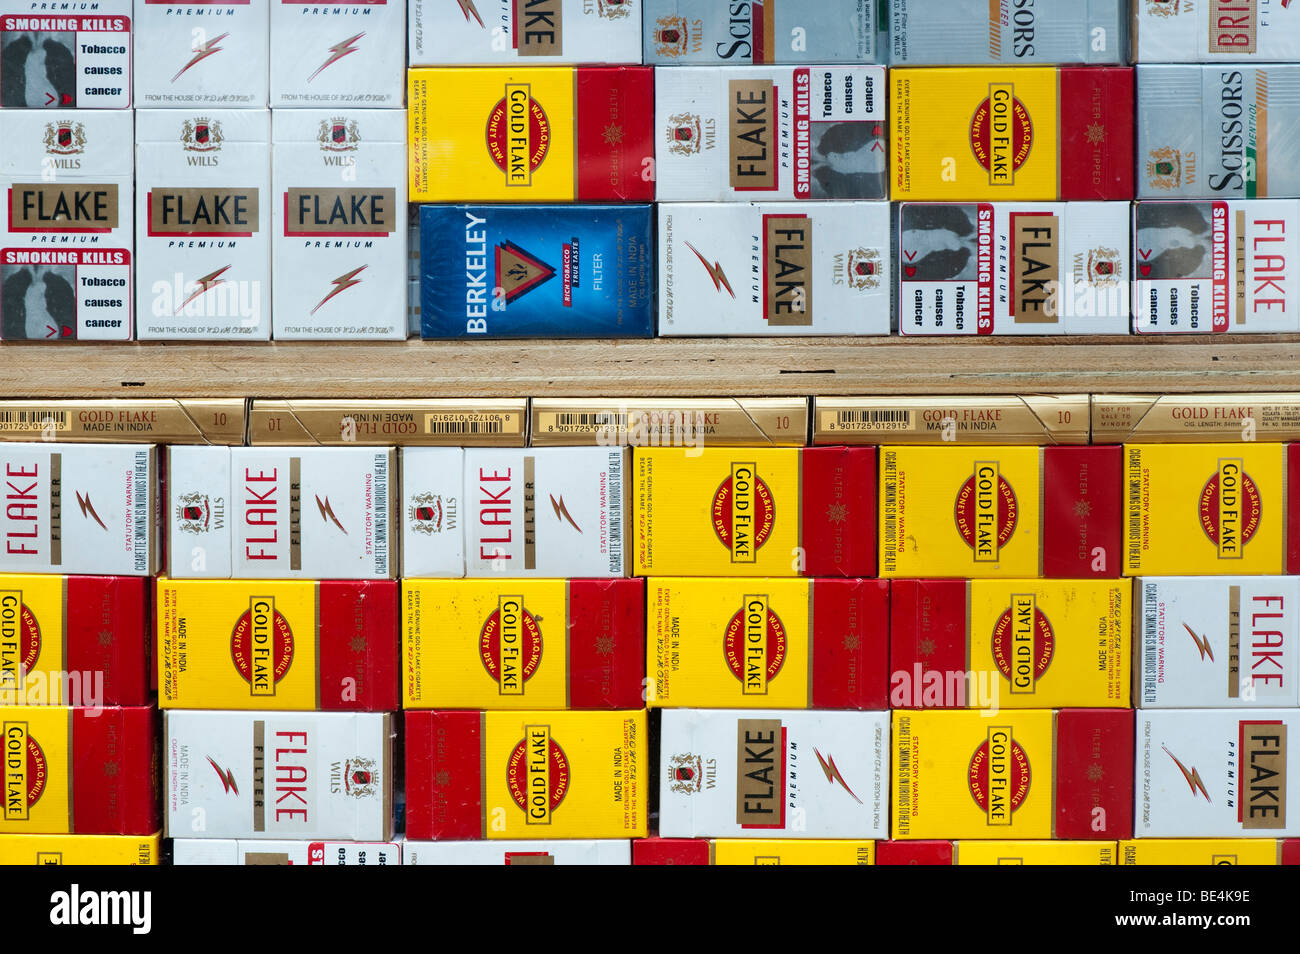 Cigarette packets in an indian shop. Andhra Pradesh, India - Stock Image